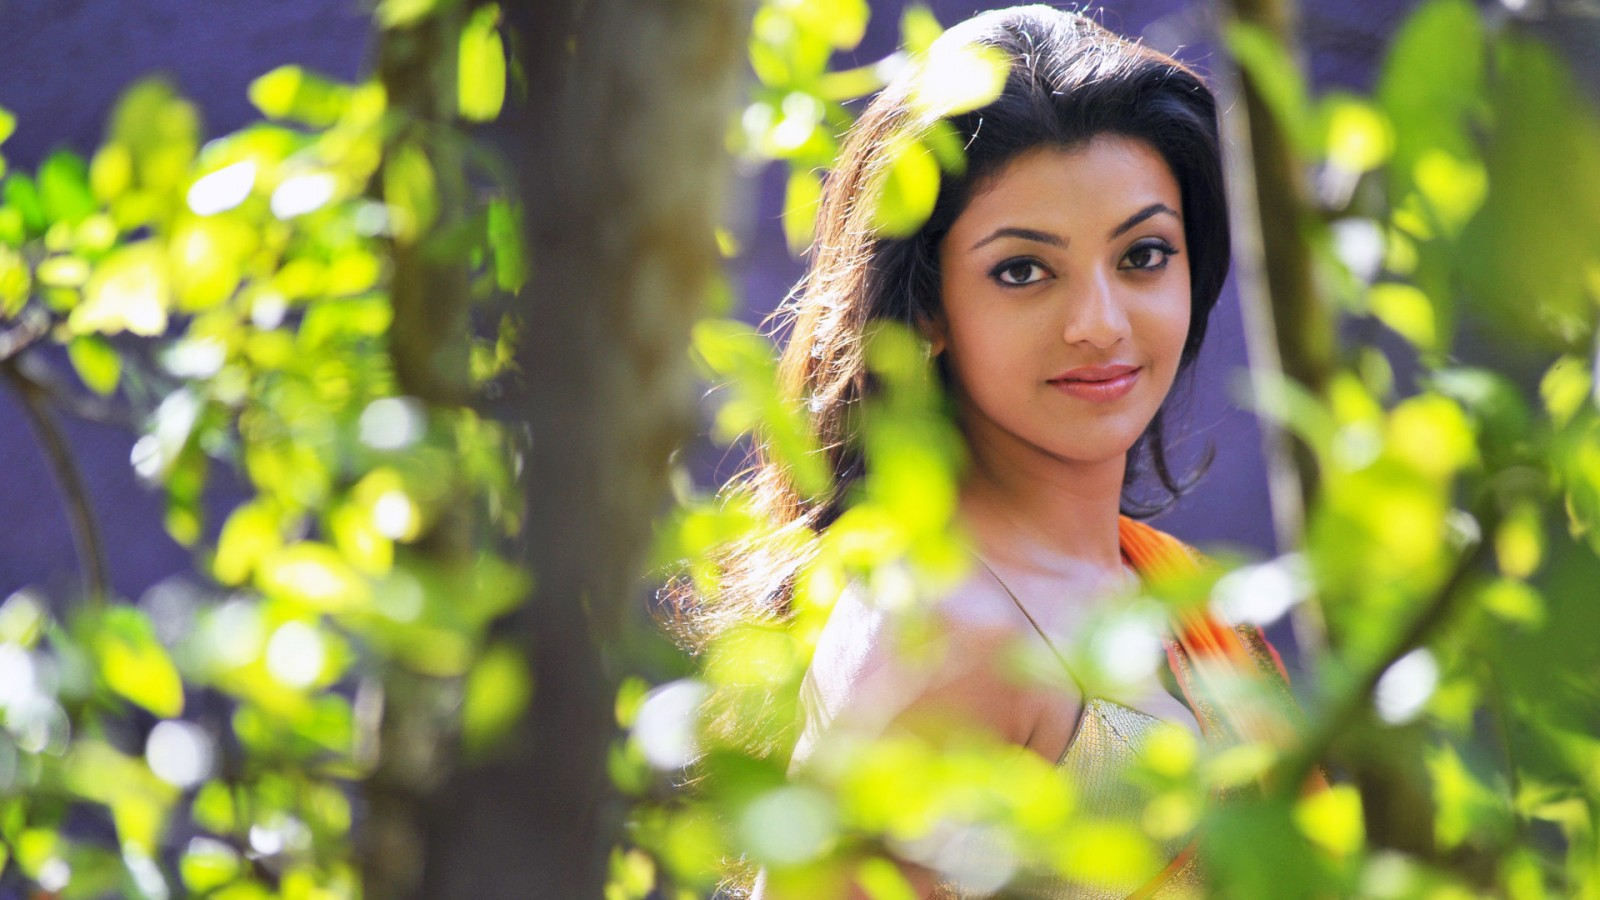 Kajal Agarwal Cute Wallpapers Kajal Agarwal 2014 Wallpapers Hd Wallpapers Id 14124